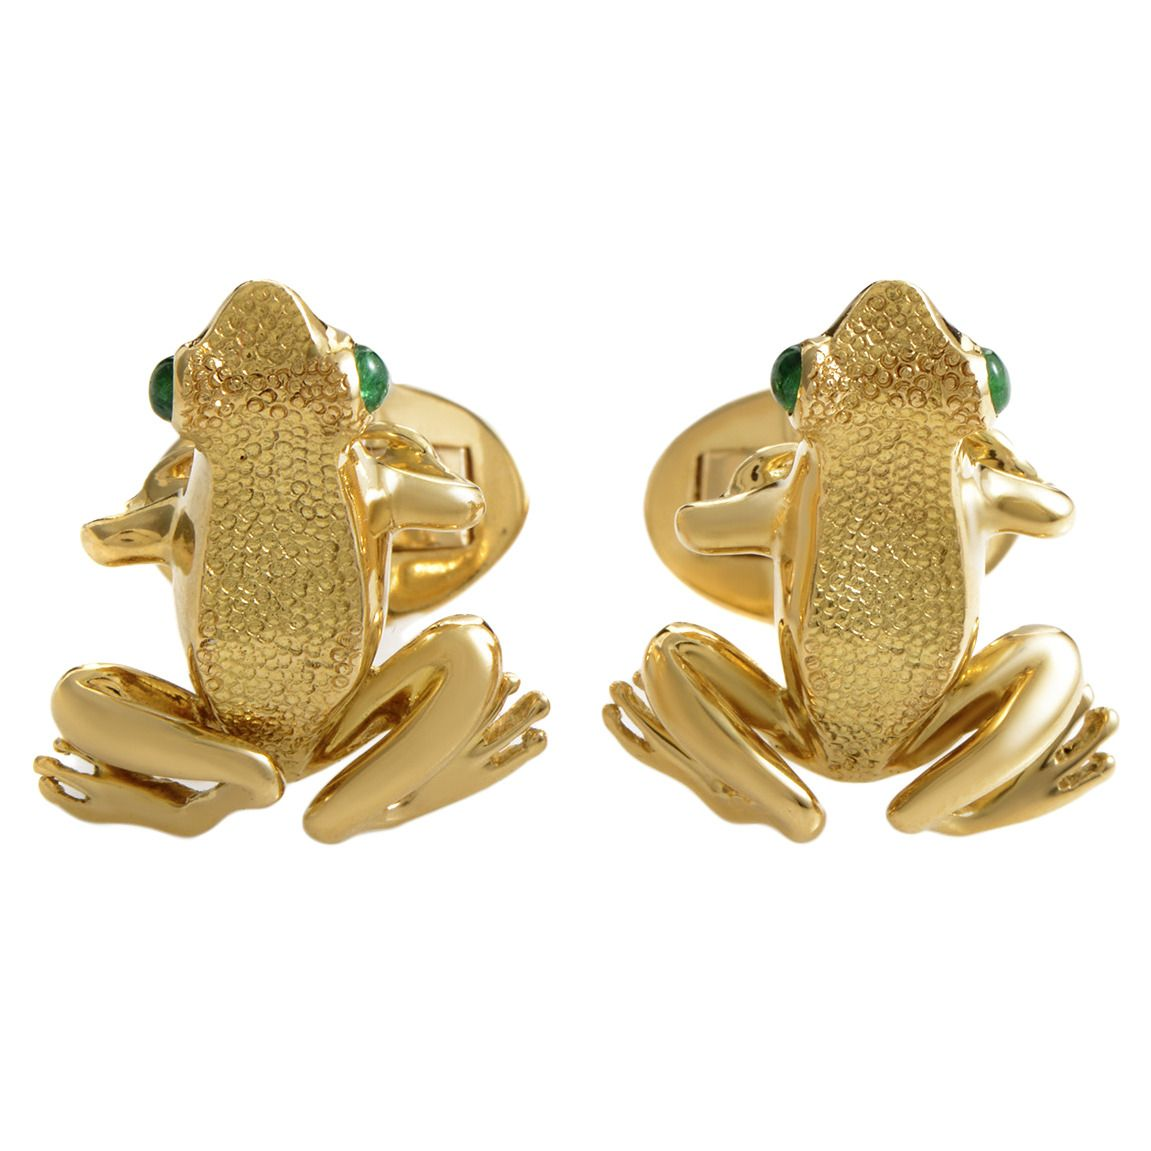 dc66f7e8a2a89 Pin by marielouise lomba on Jewels in 2019 | Tiffany cufflinks ...